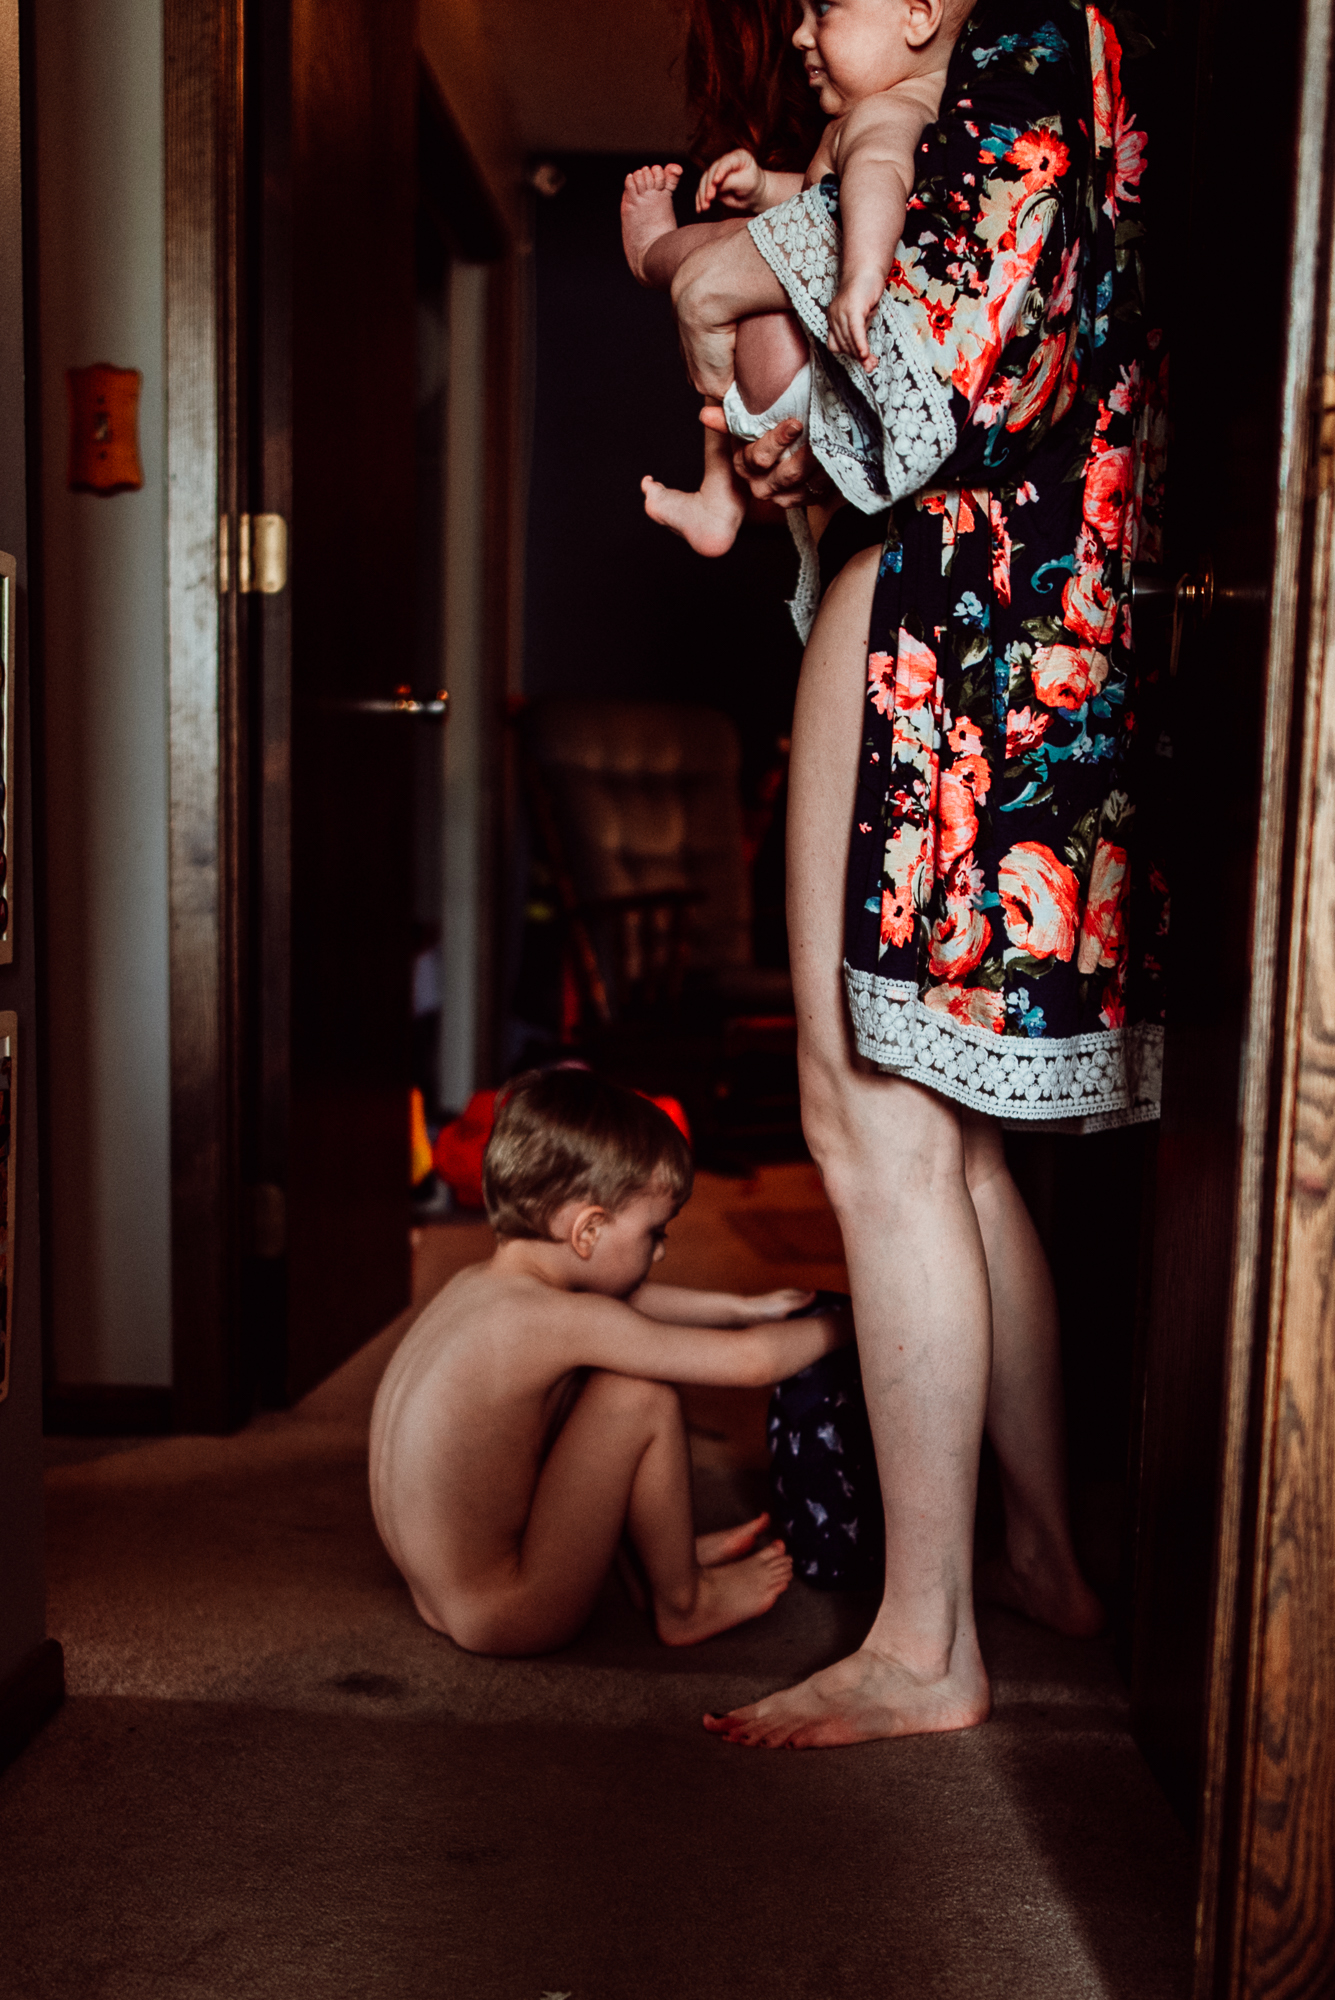 Minneapolis Postpartum Photography by Meredith Westin-May 14, 2019-131358.jpg